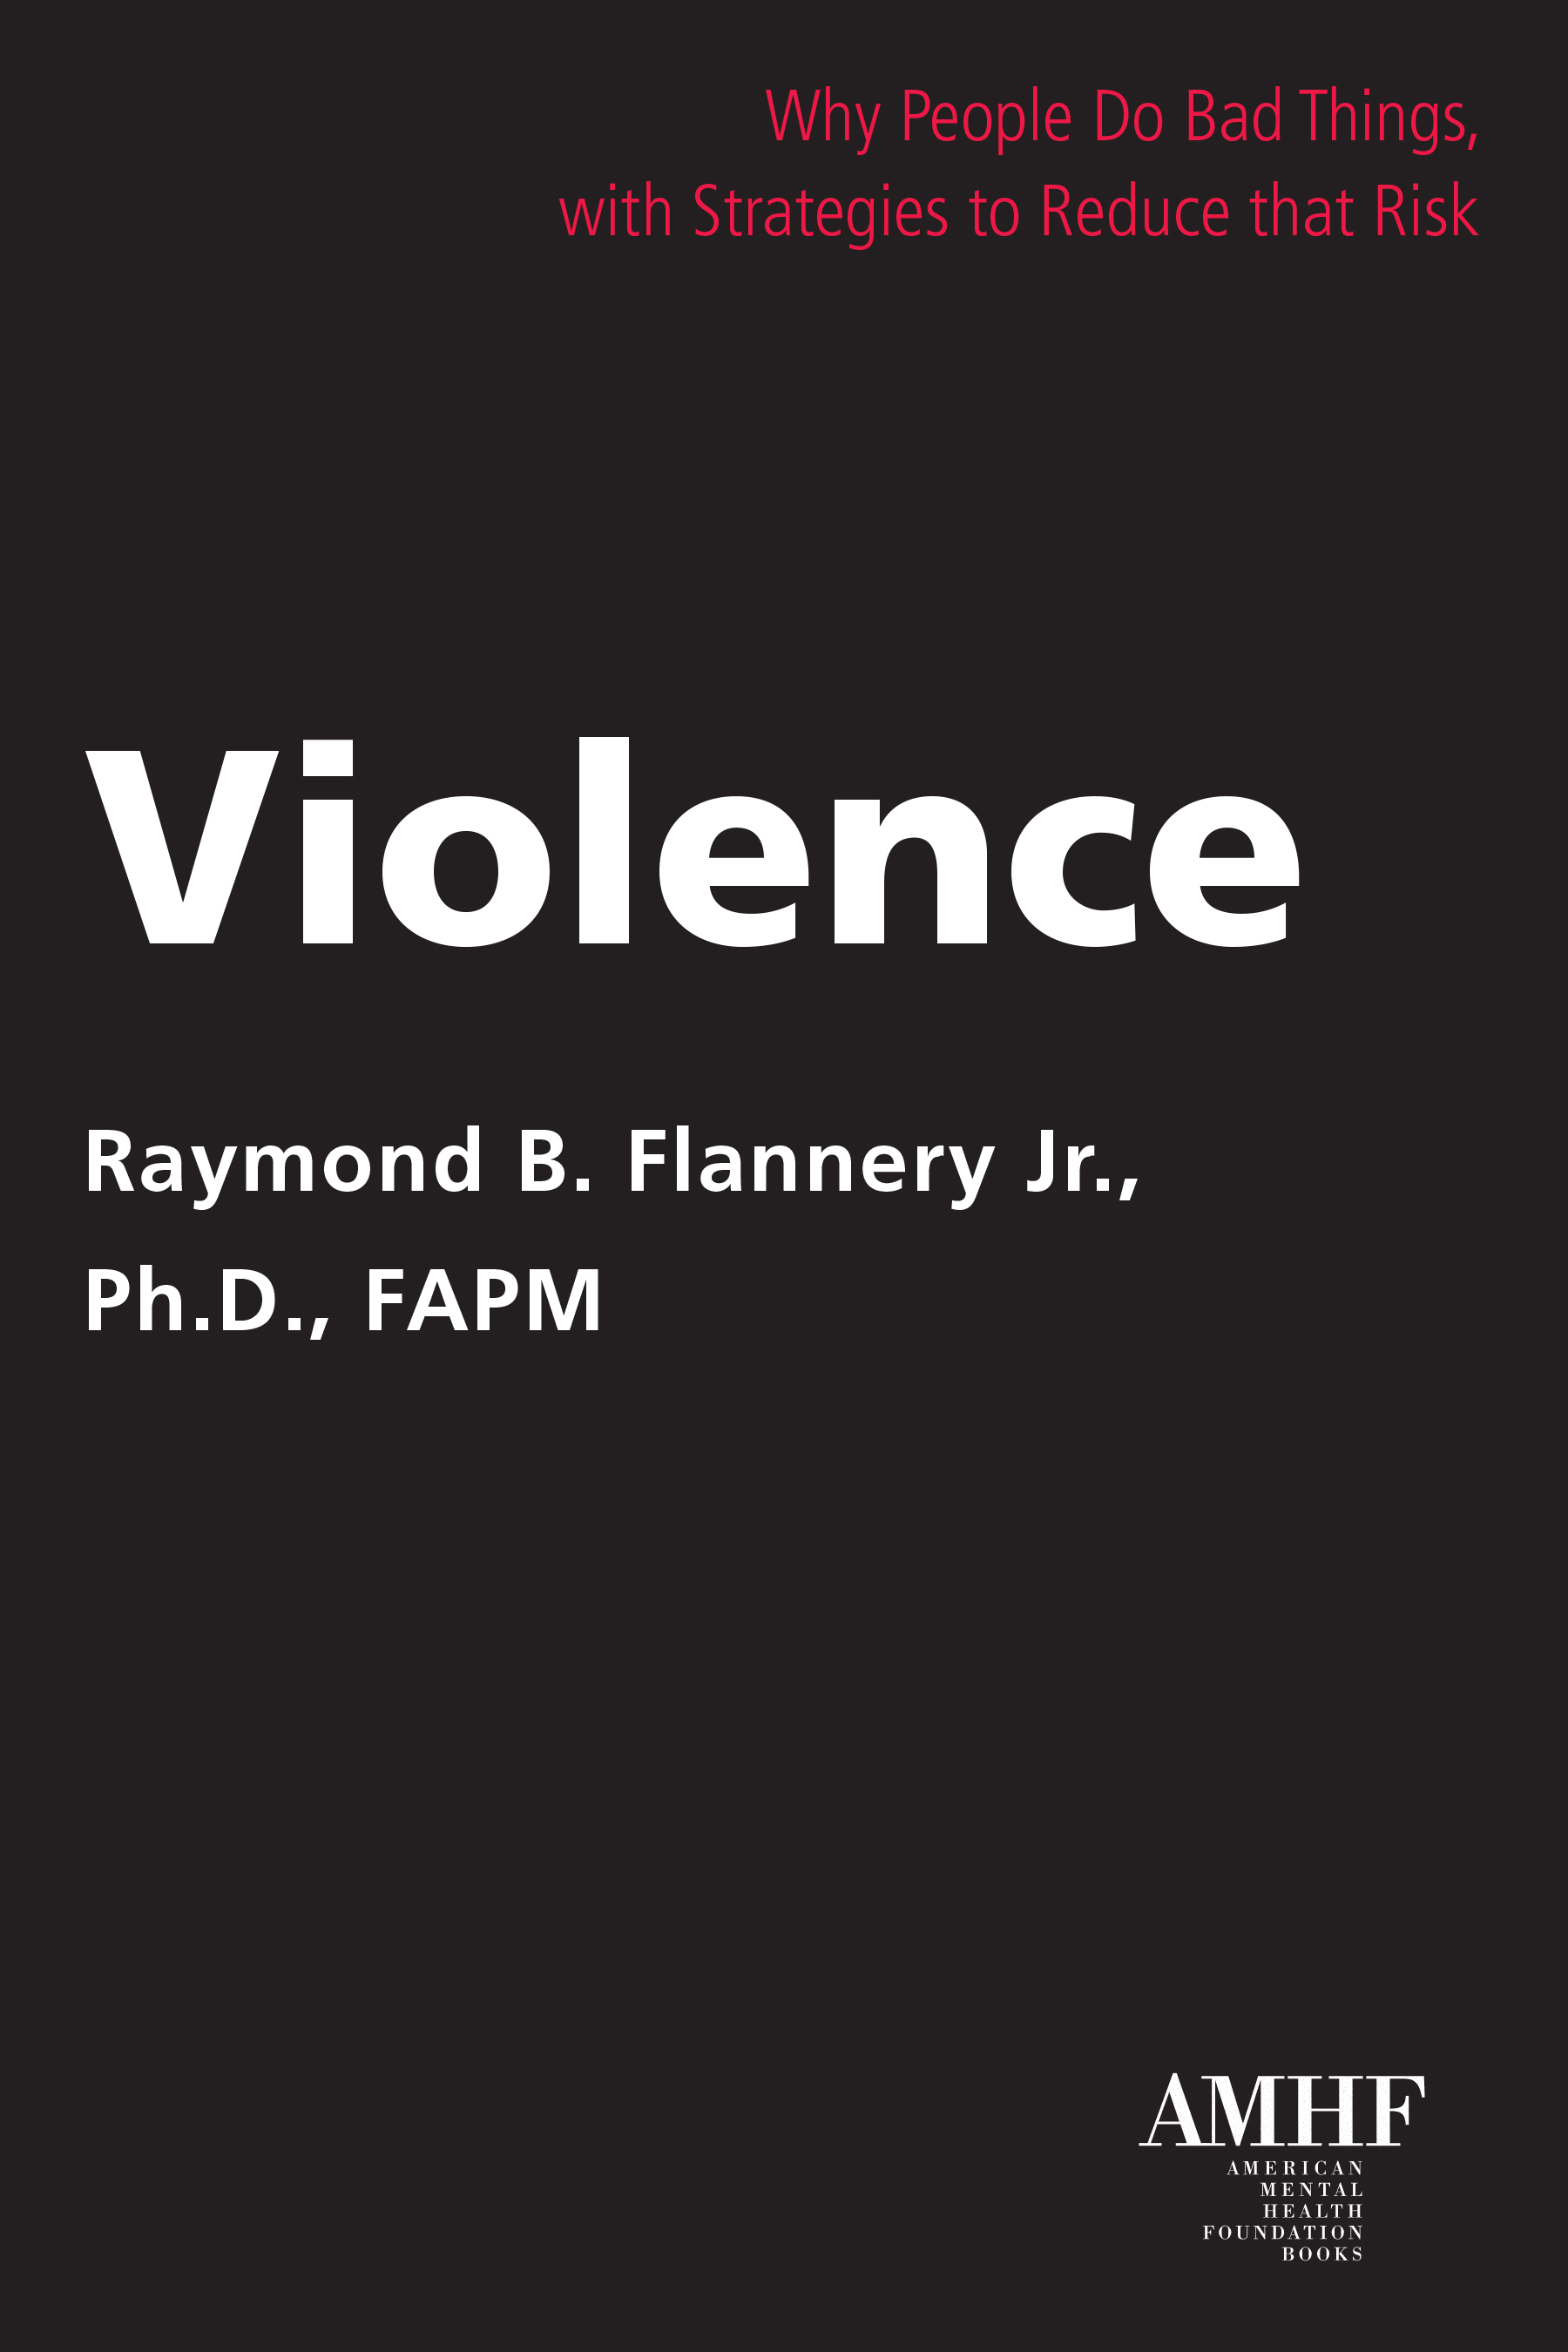 American Mental Health Foundation Violence By Raymond B Flannery